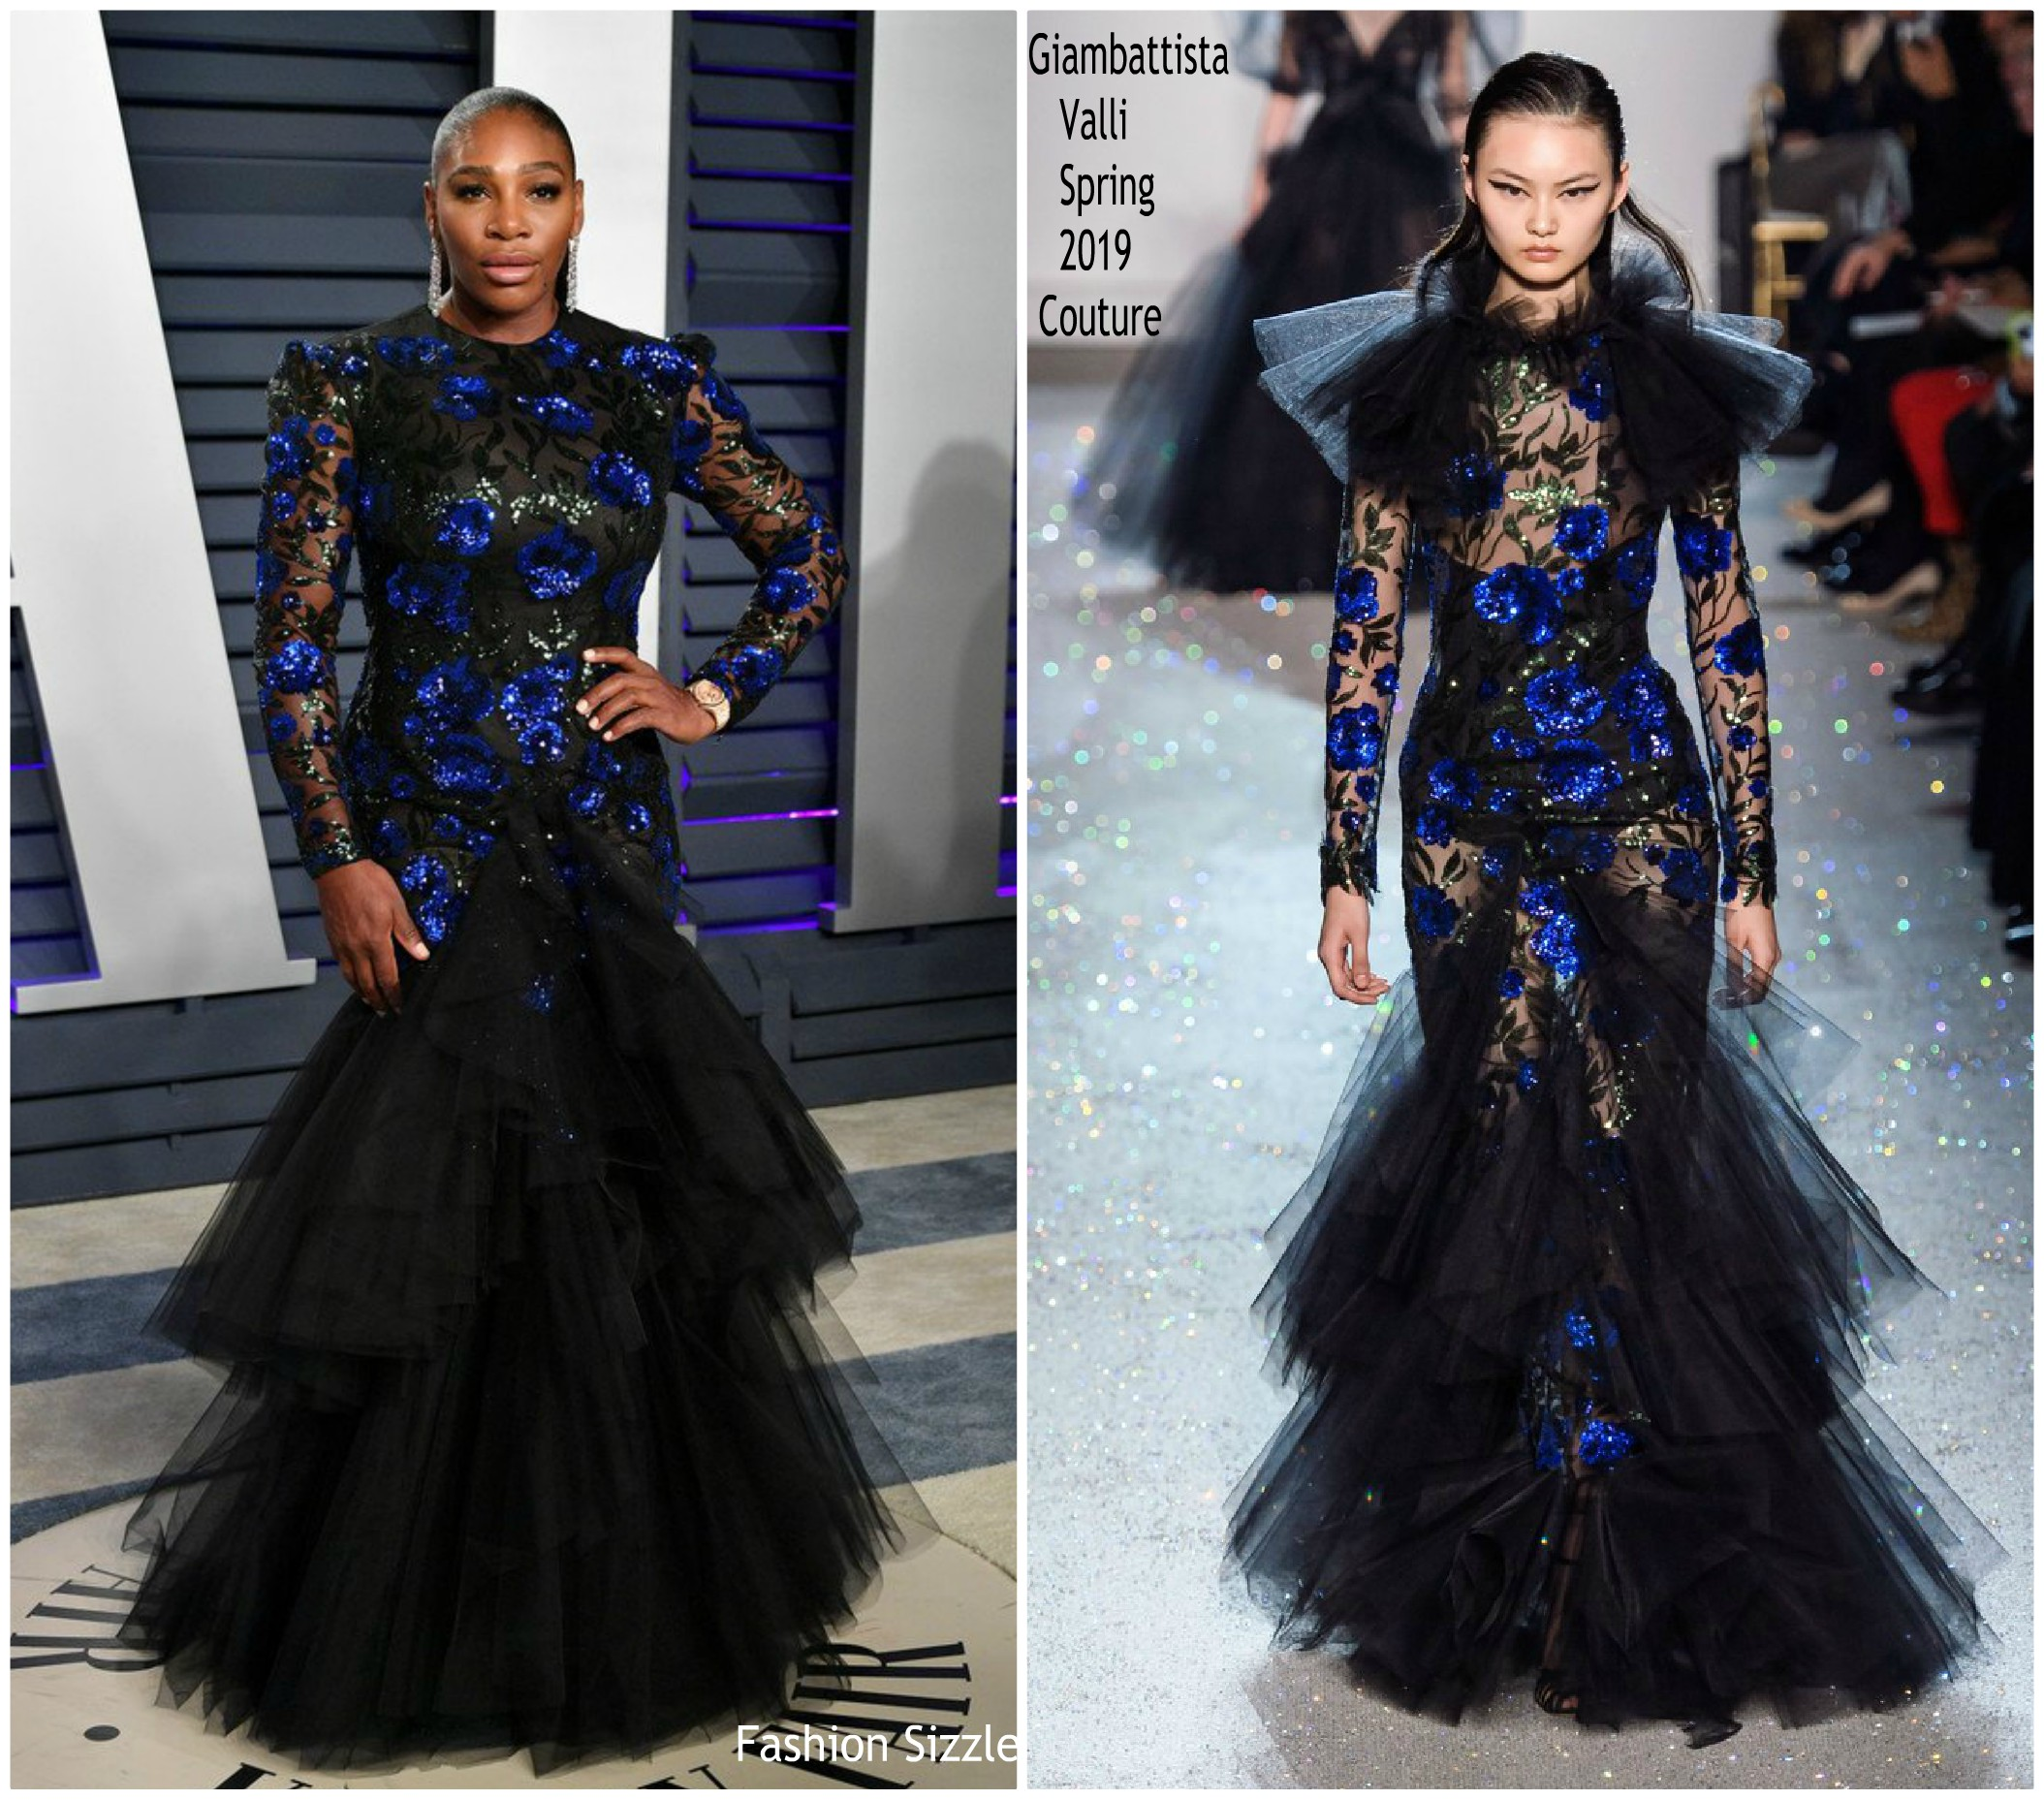 serena-williams-in-giambattista-valli-couture-2019-vanity-fair-oscar-party